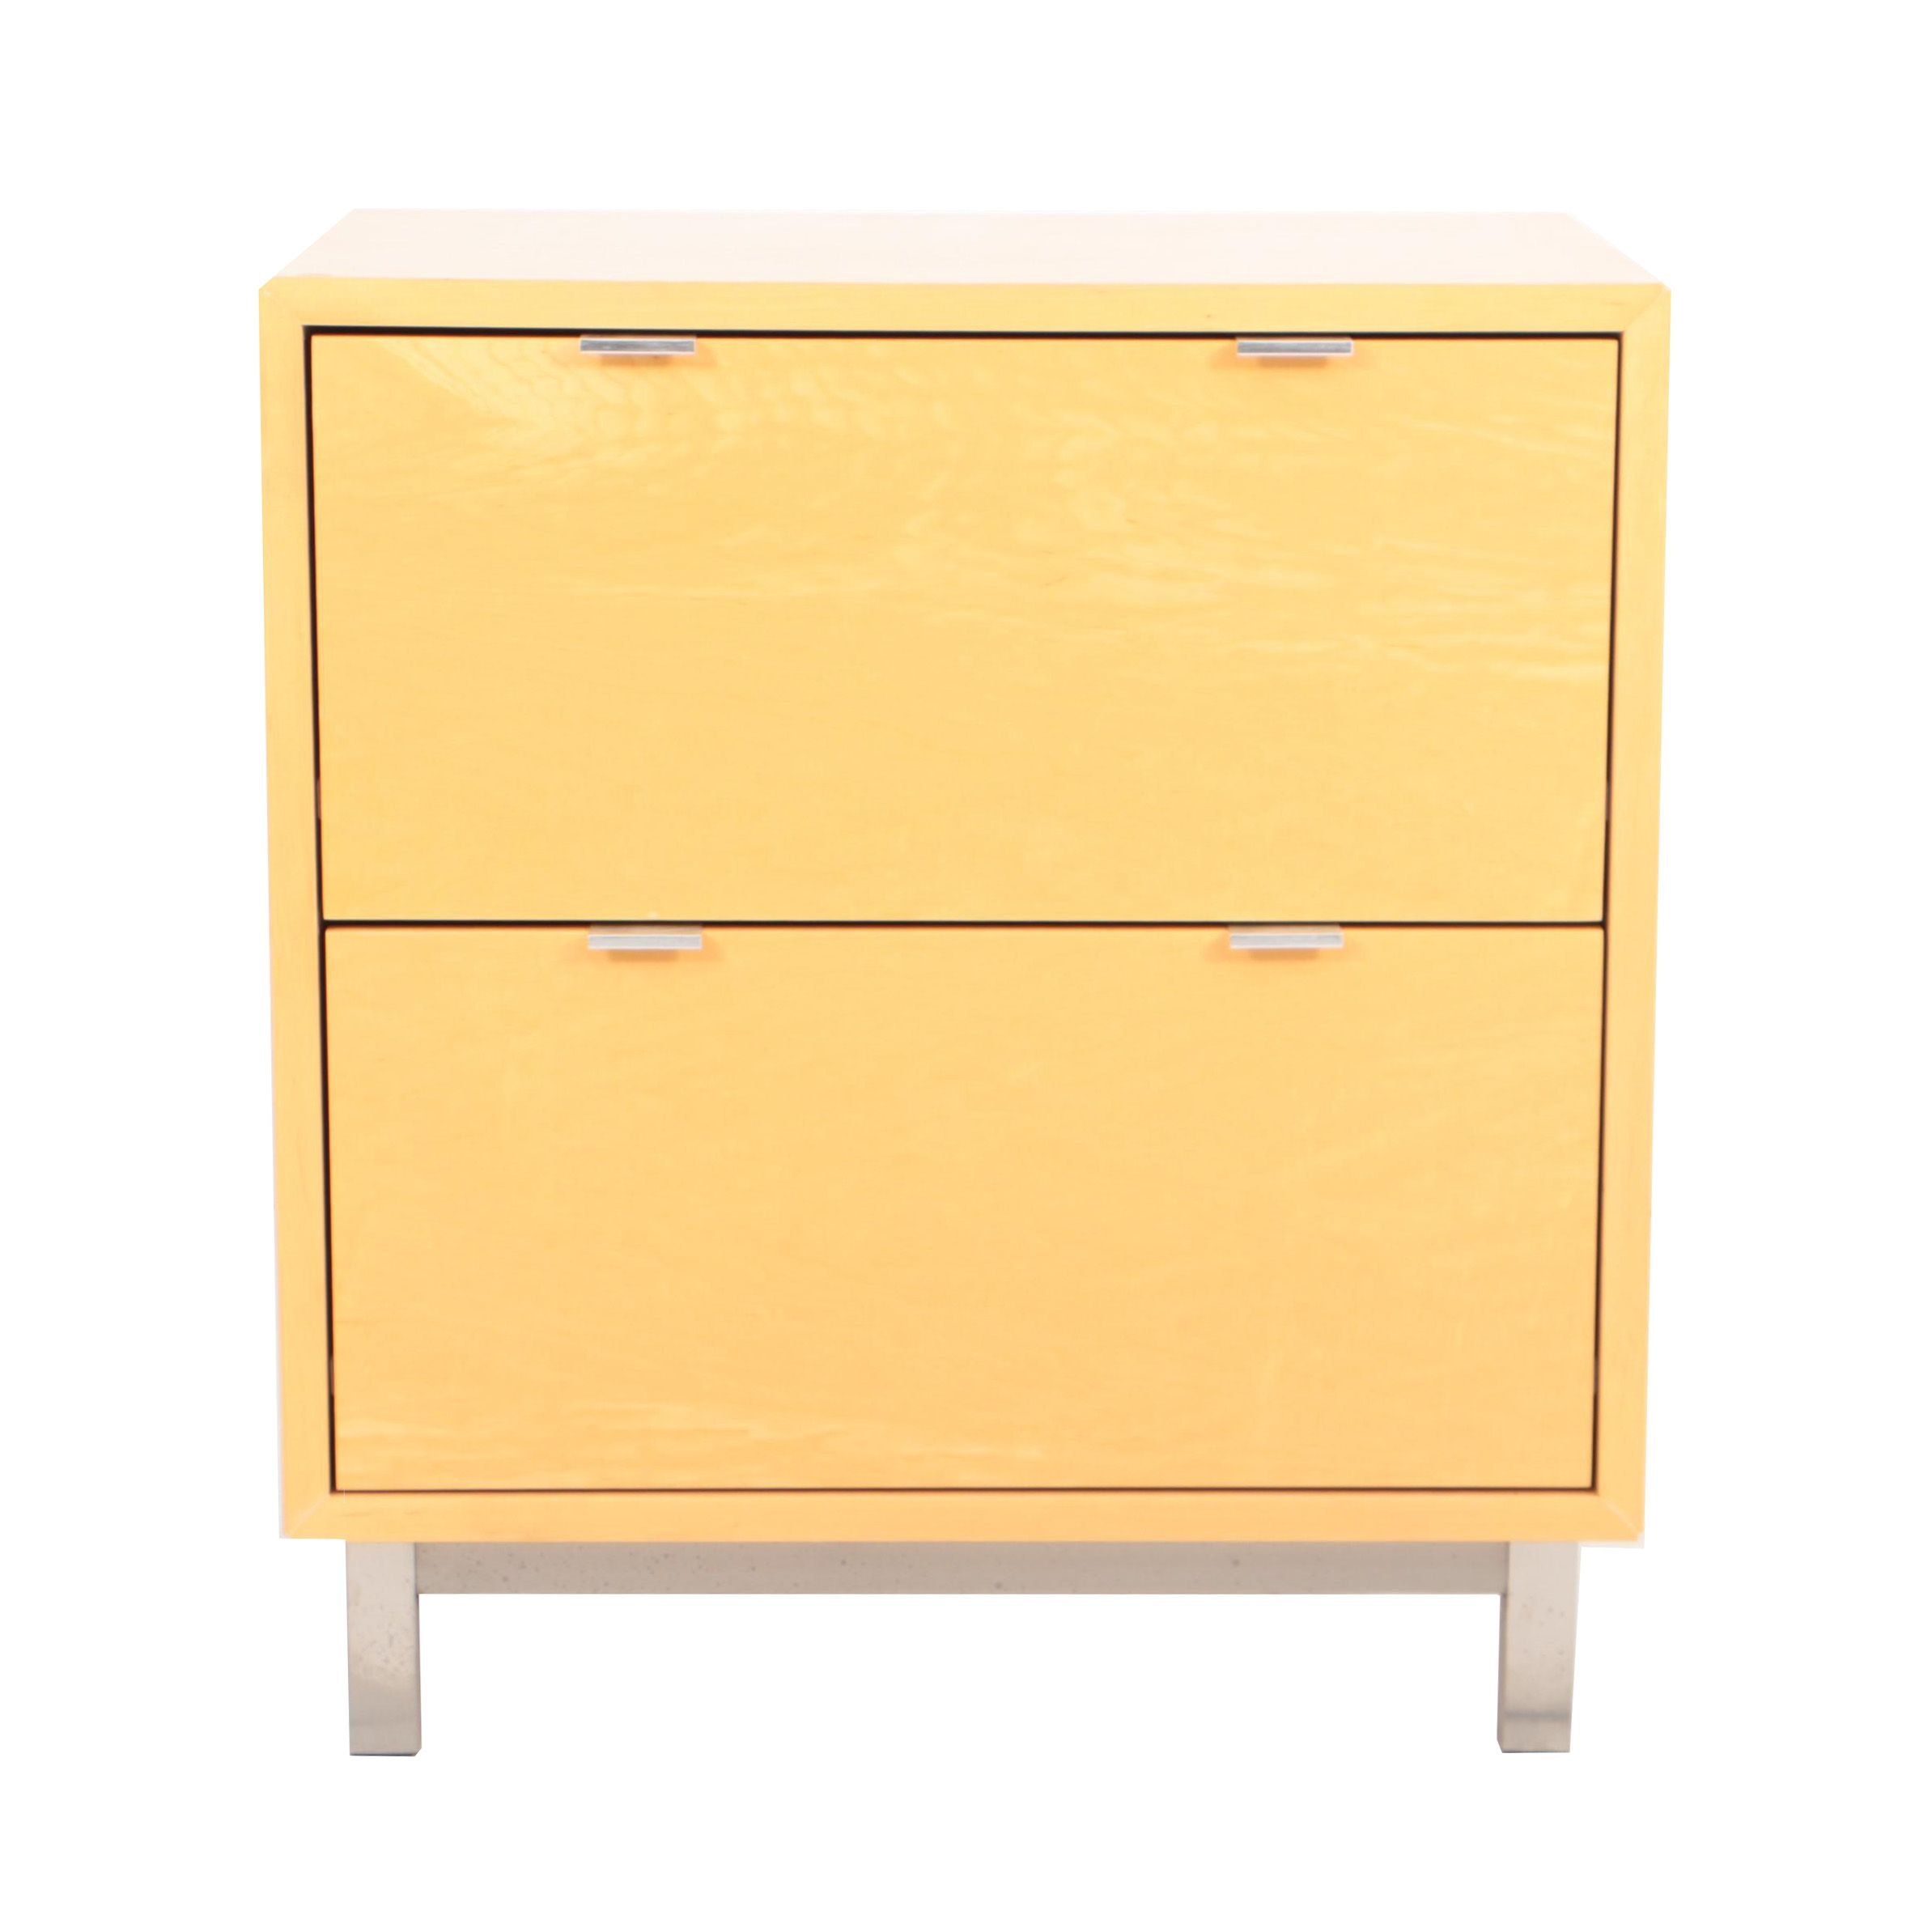 Beech Veneer Wood with Aluminum Hardware Lateral File Cabinet